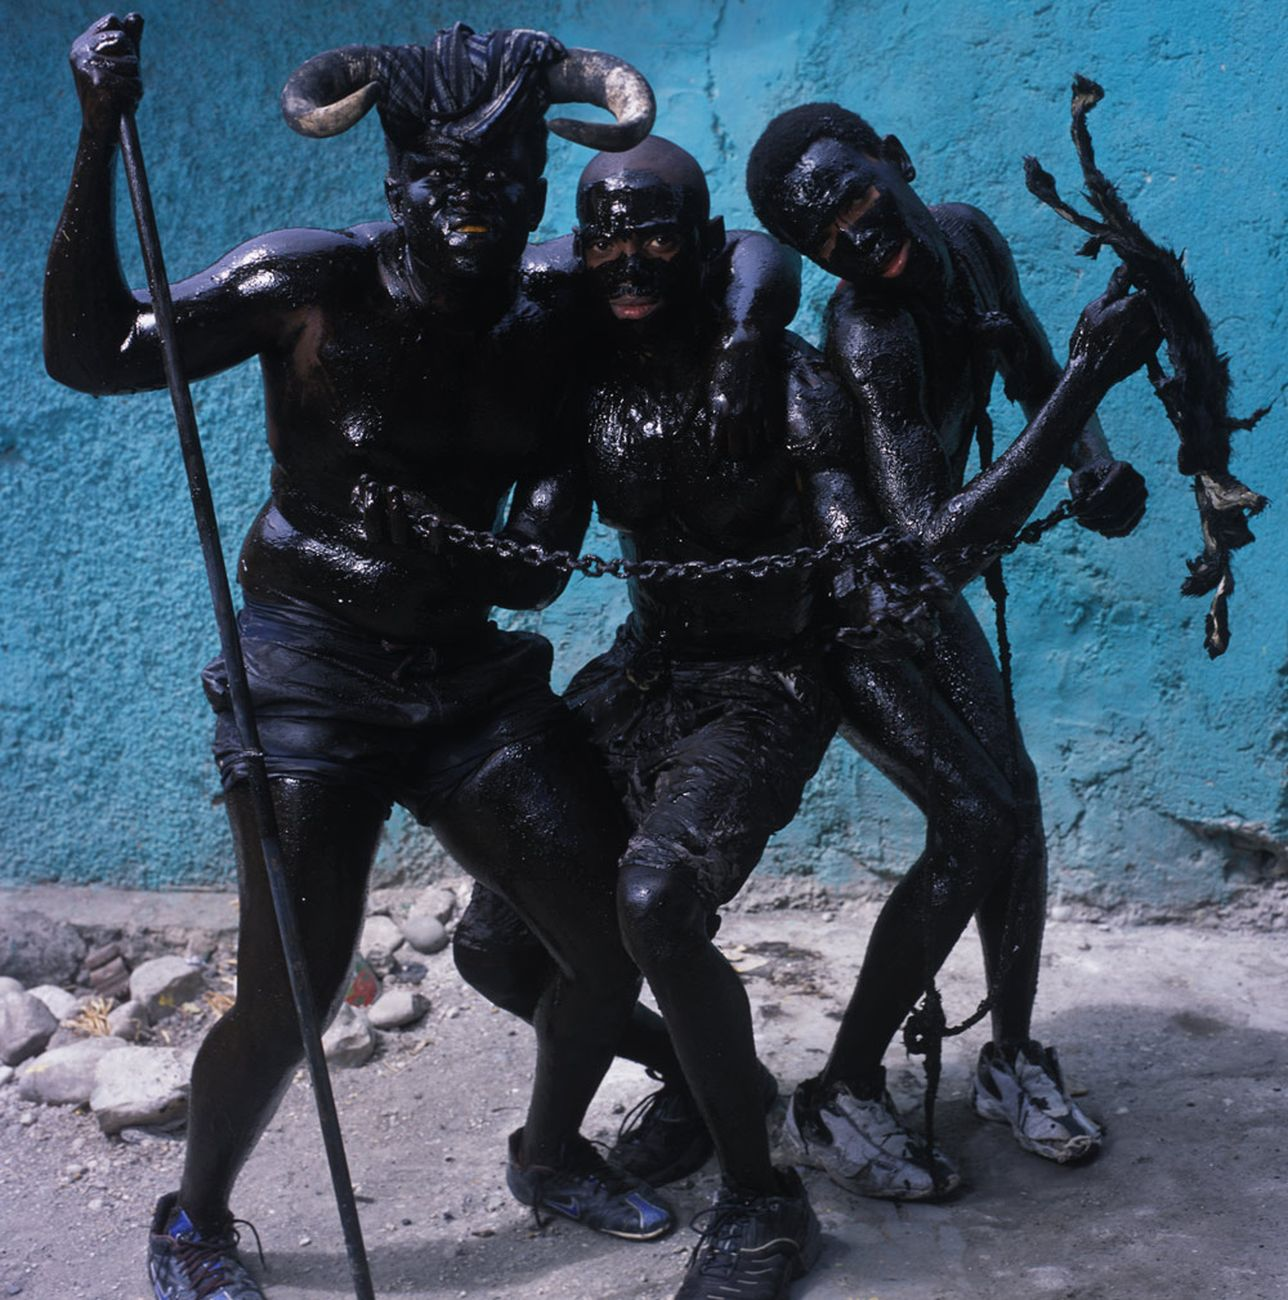 Phyllis Galembo, Three Men With Chains, 2004. Courtesy Sindika Dokolo Foundation, Bruxelles